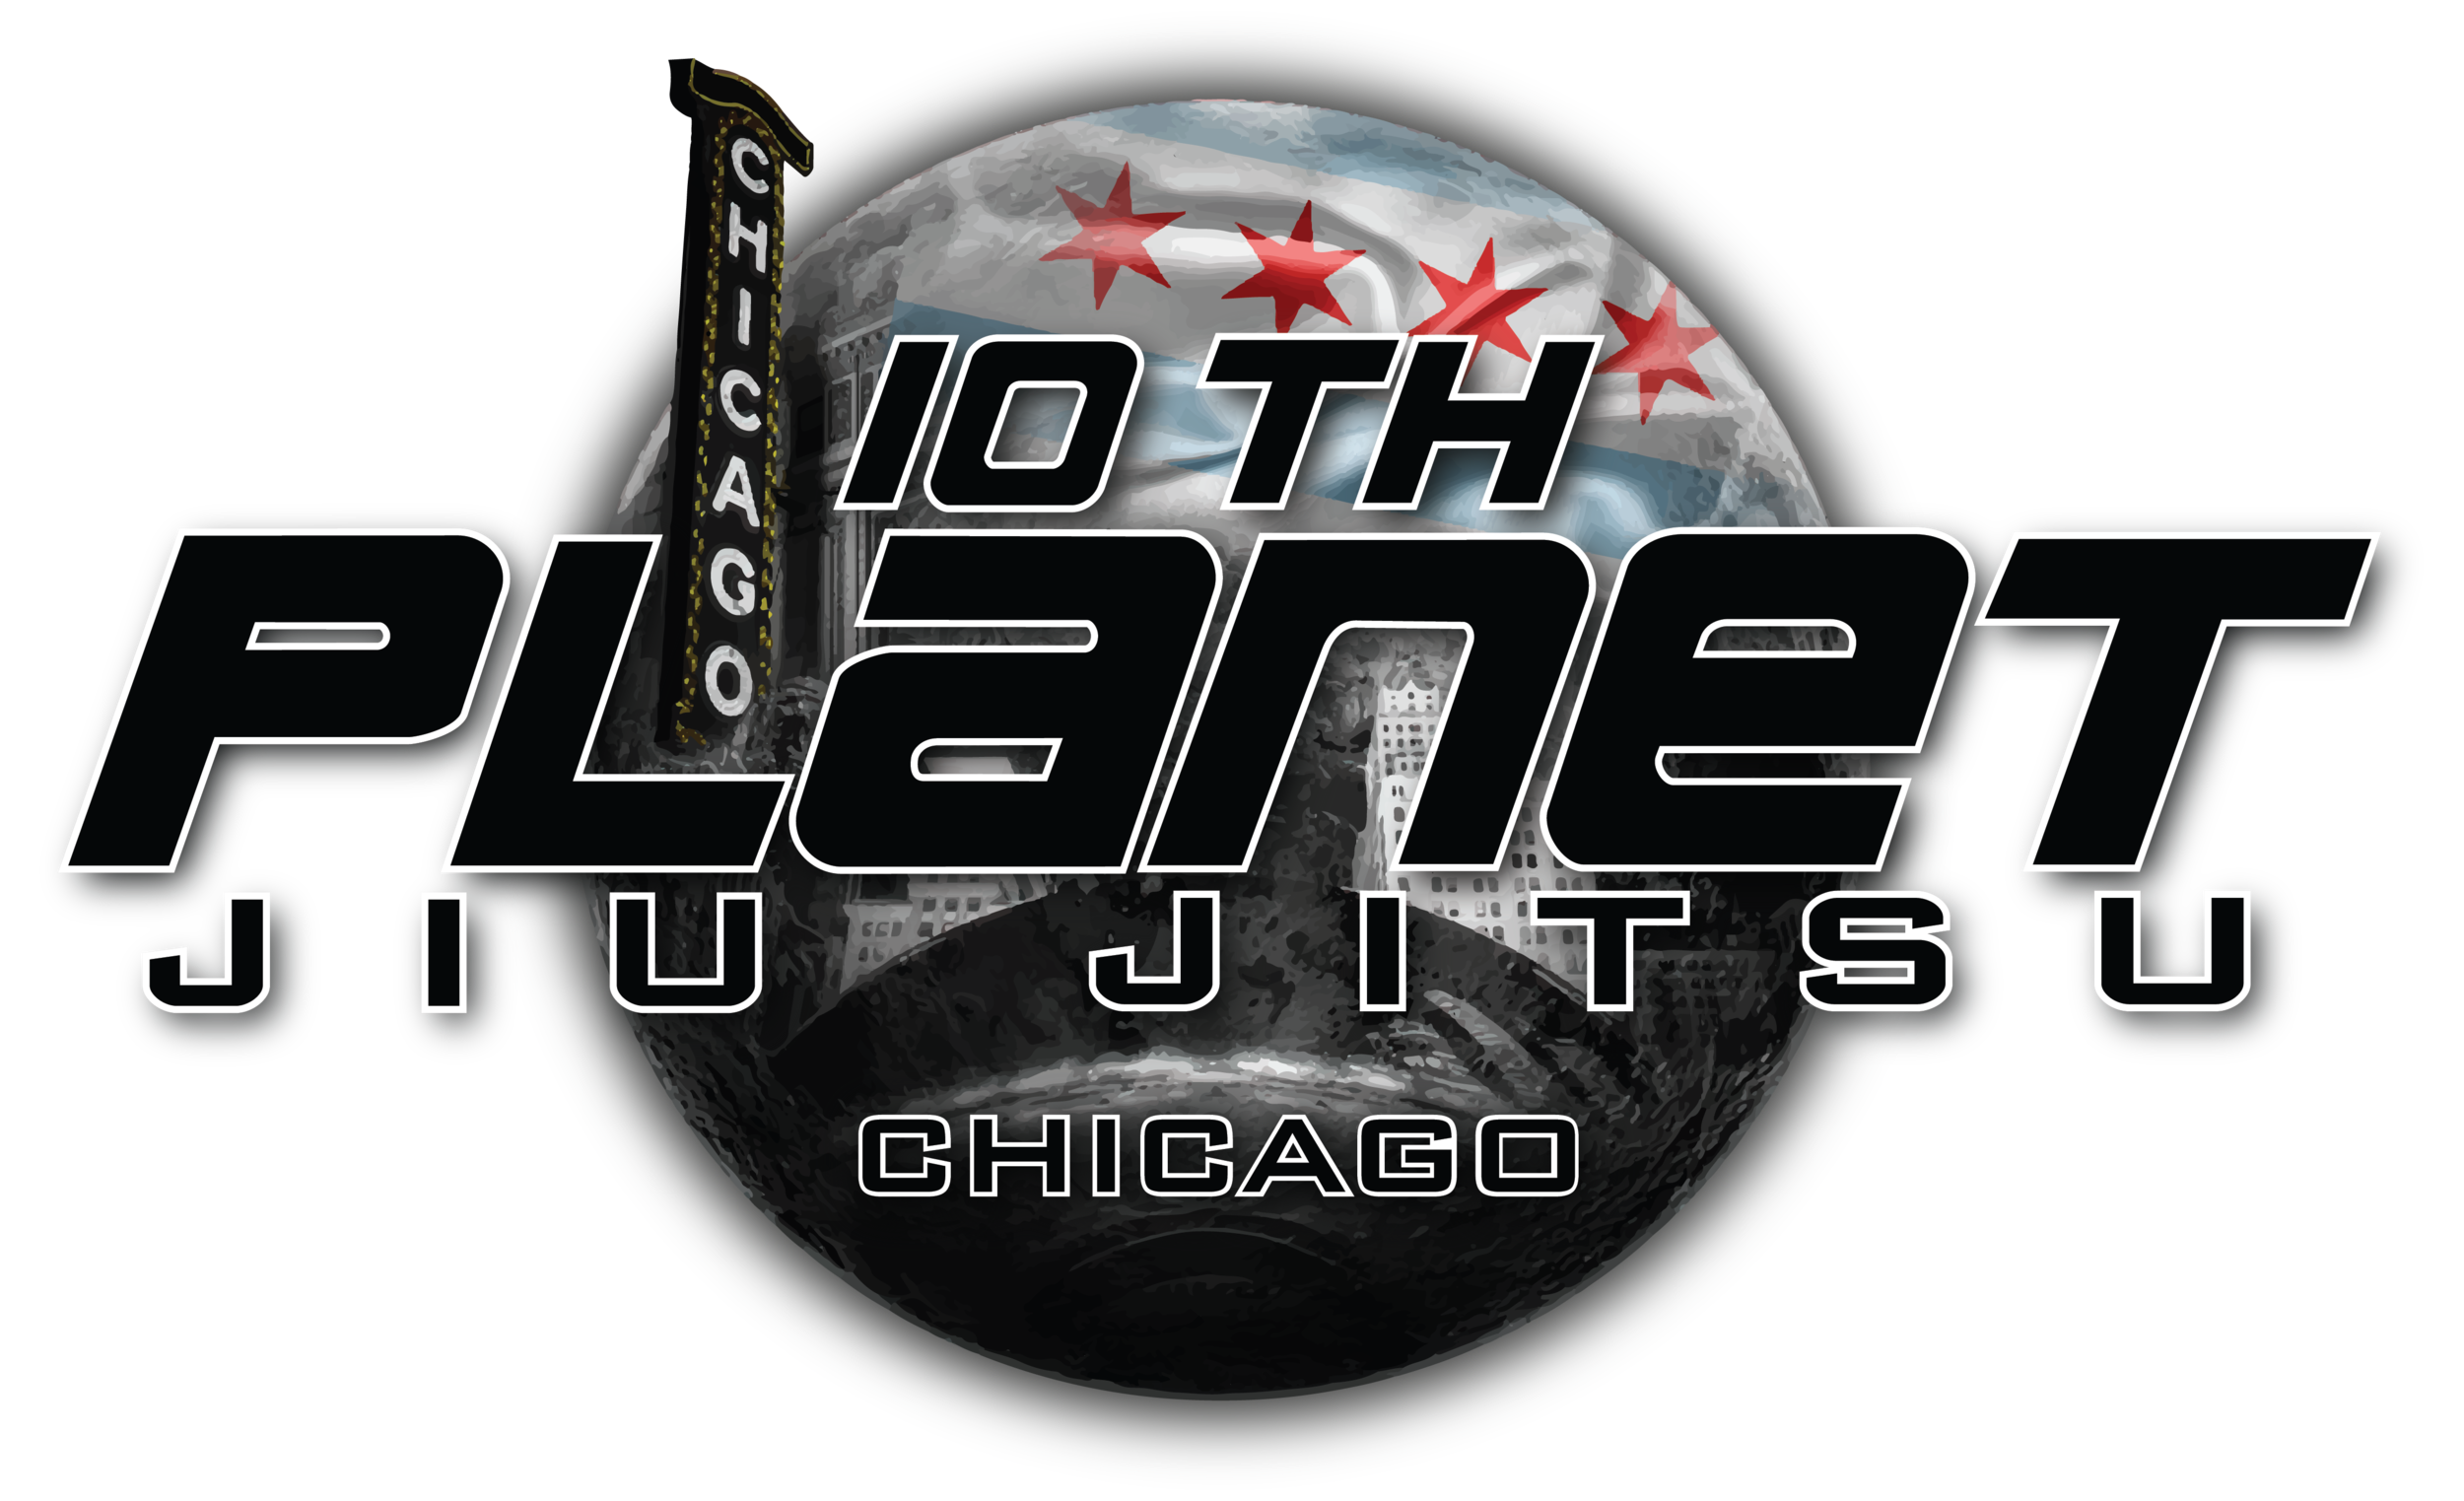 10thPlanetChicago Black Logo.png